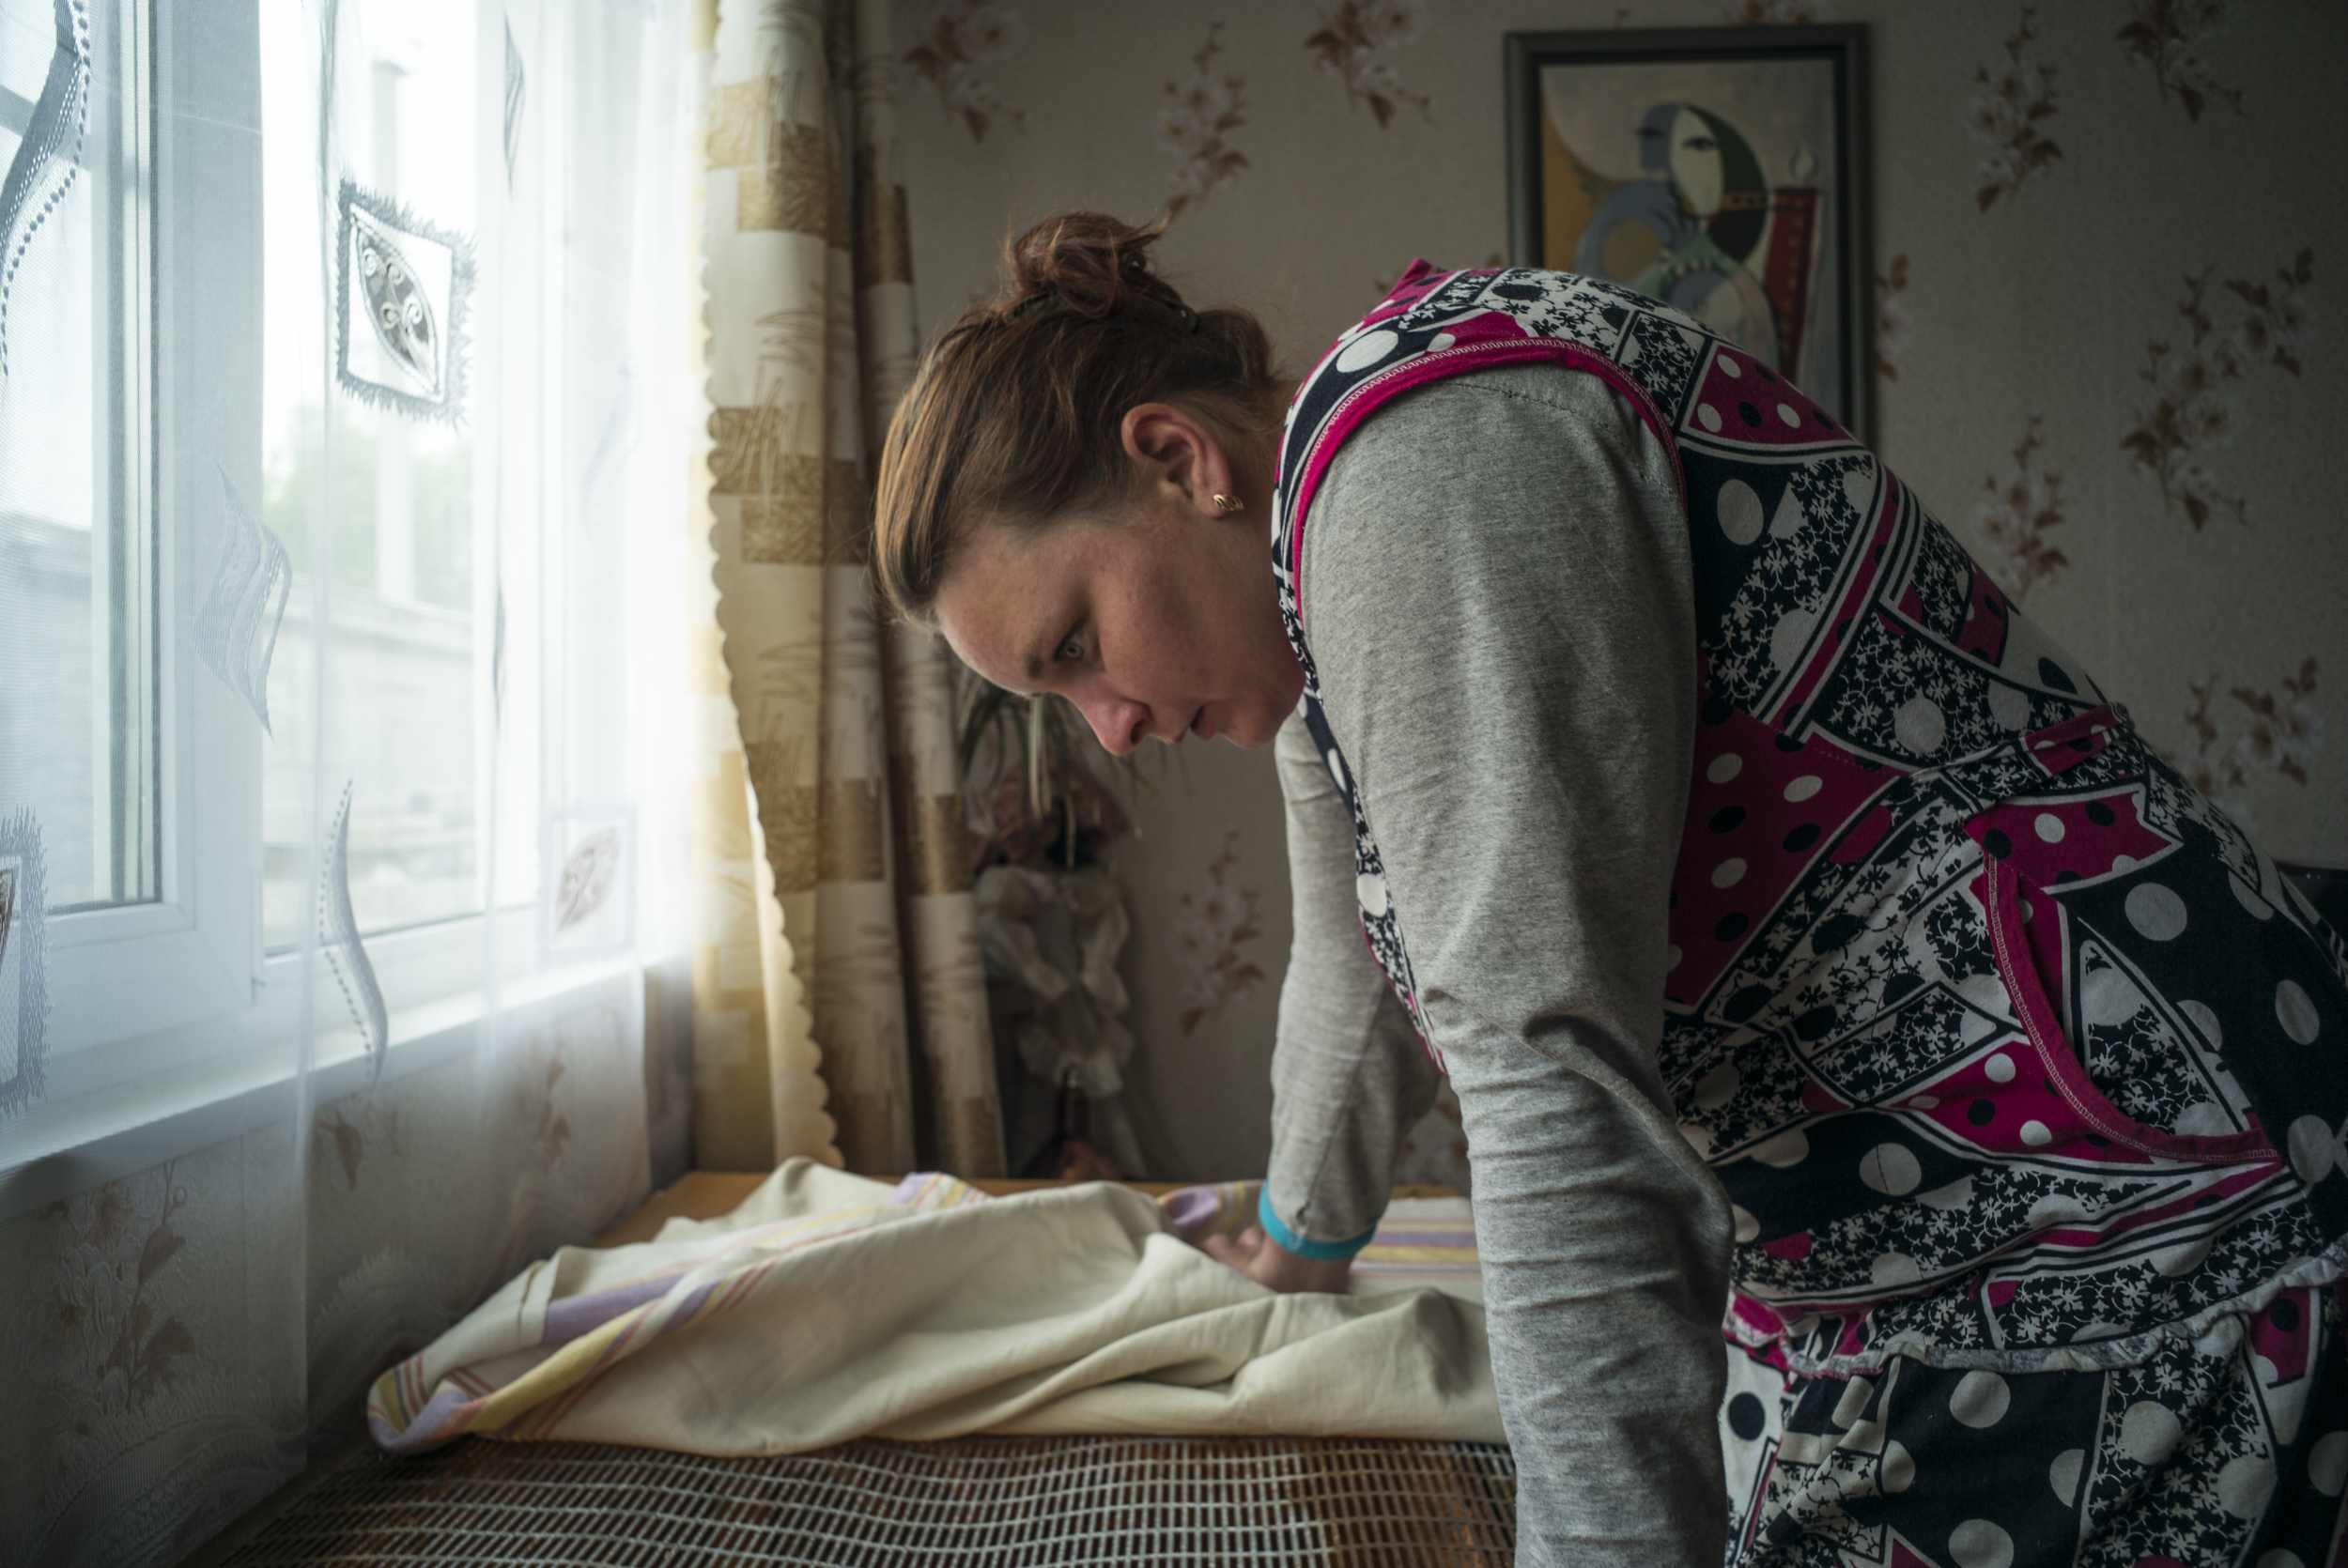 Sevetlana Taherbeigi prepares for yet another day on the farm at the crack of dawn on Tuesday morning, June 2, 2015, in Goritsa, Moskovskaya, Russia. She had stayed up almost all night drinking vodka with her mother and husband because her children were out of town. (© Alicia Afshar)